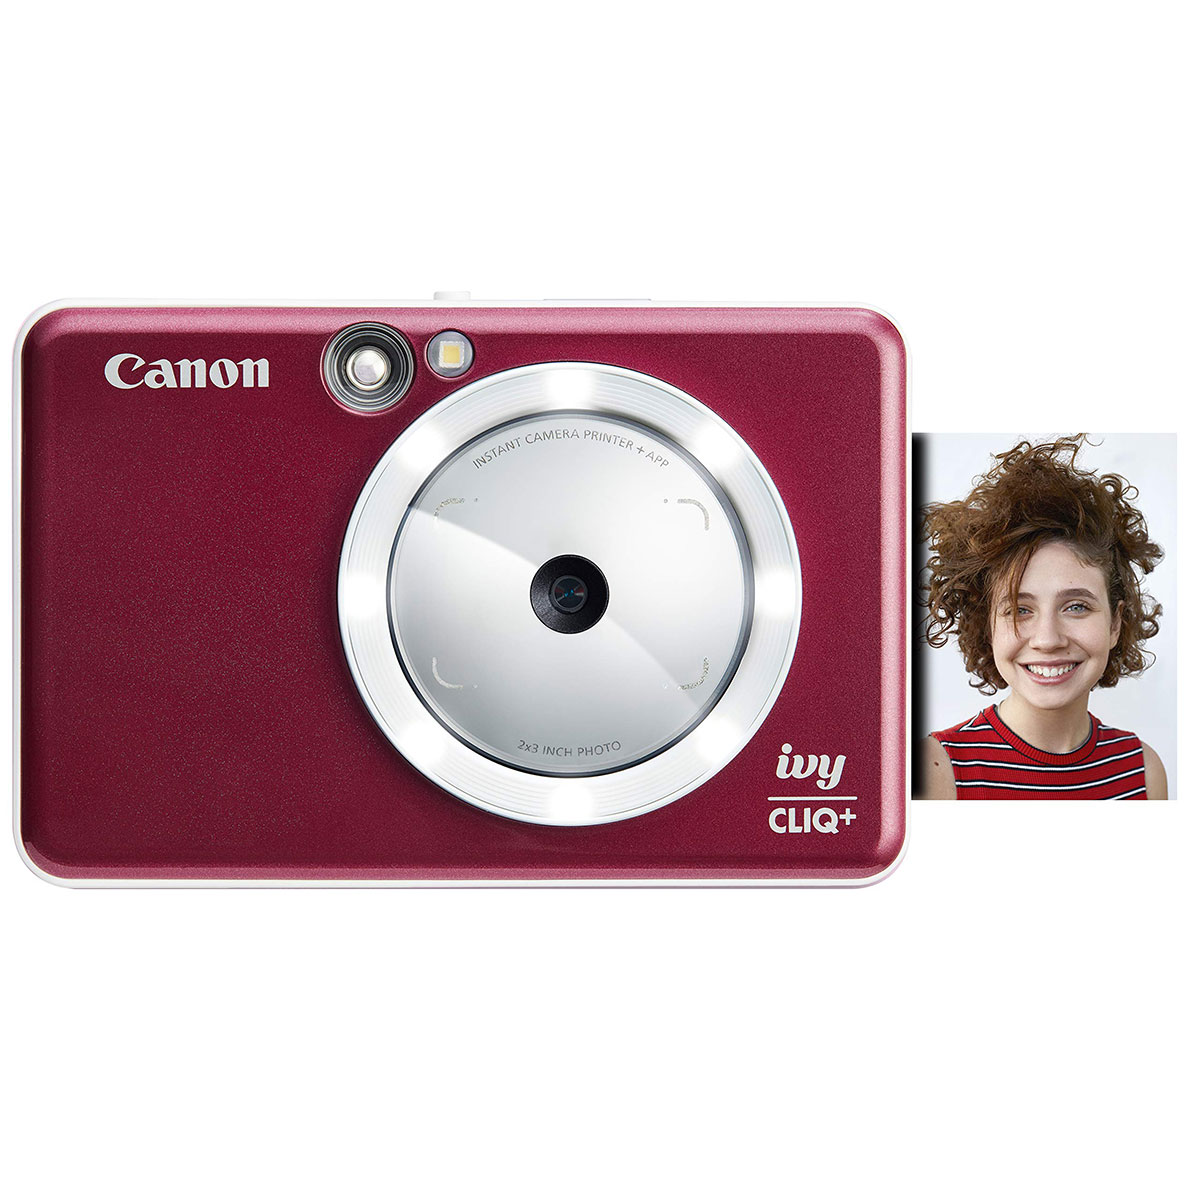 Canon Ivy CLIQ+ Instant Camera Printer